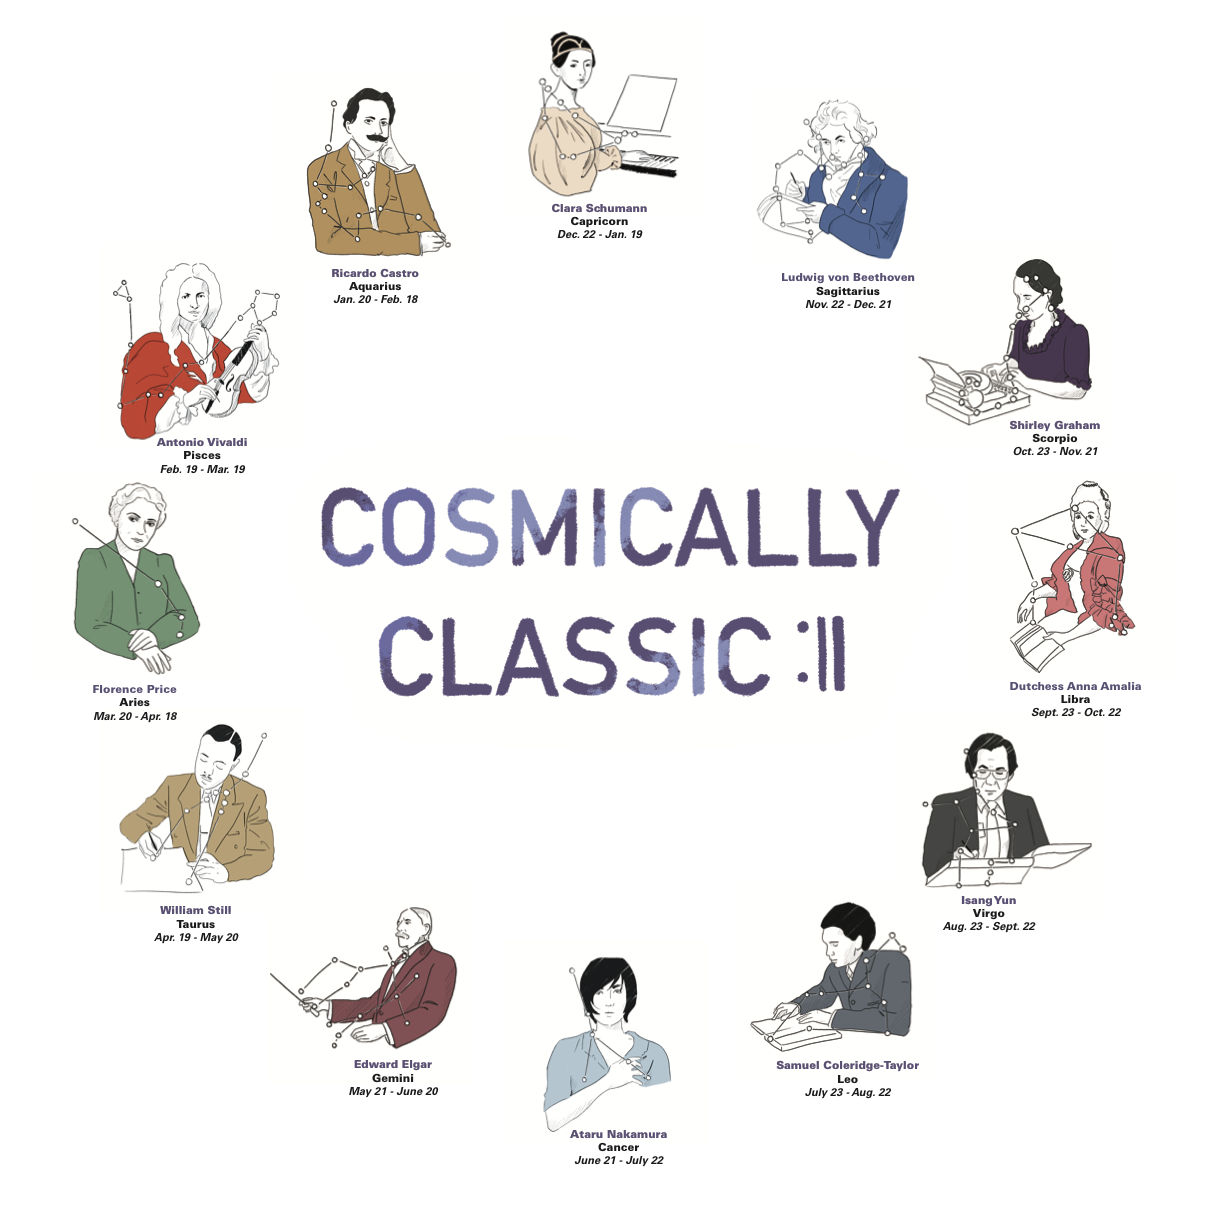 Cosmically Classic  An Instagram campaign for WQXR Classical Music Station.